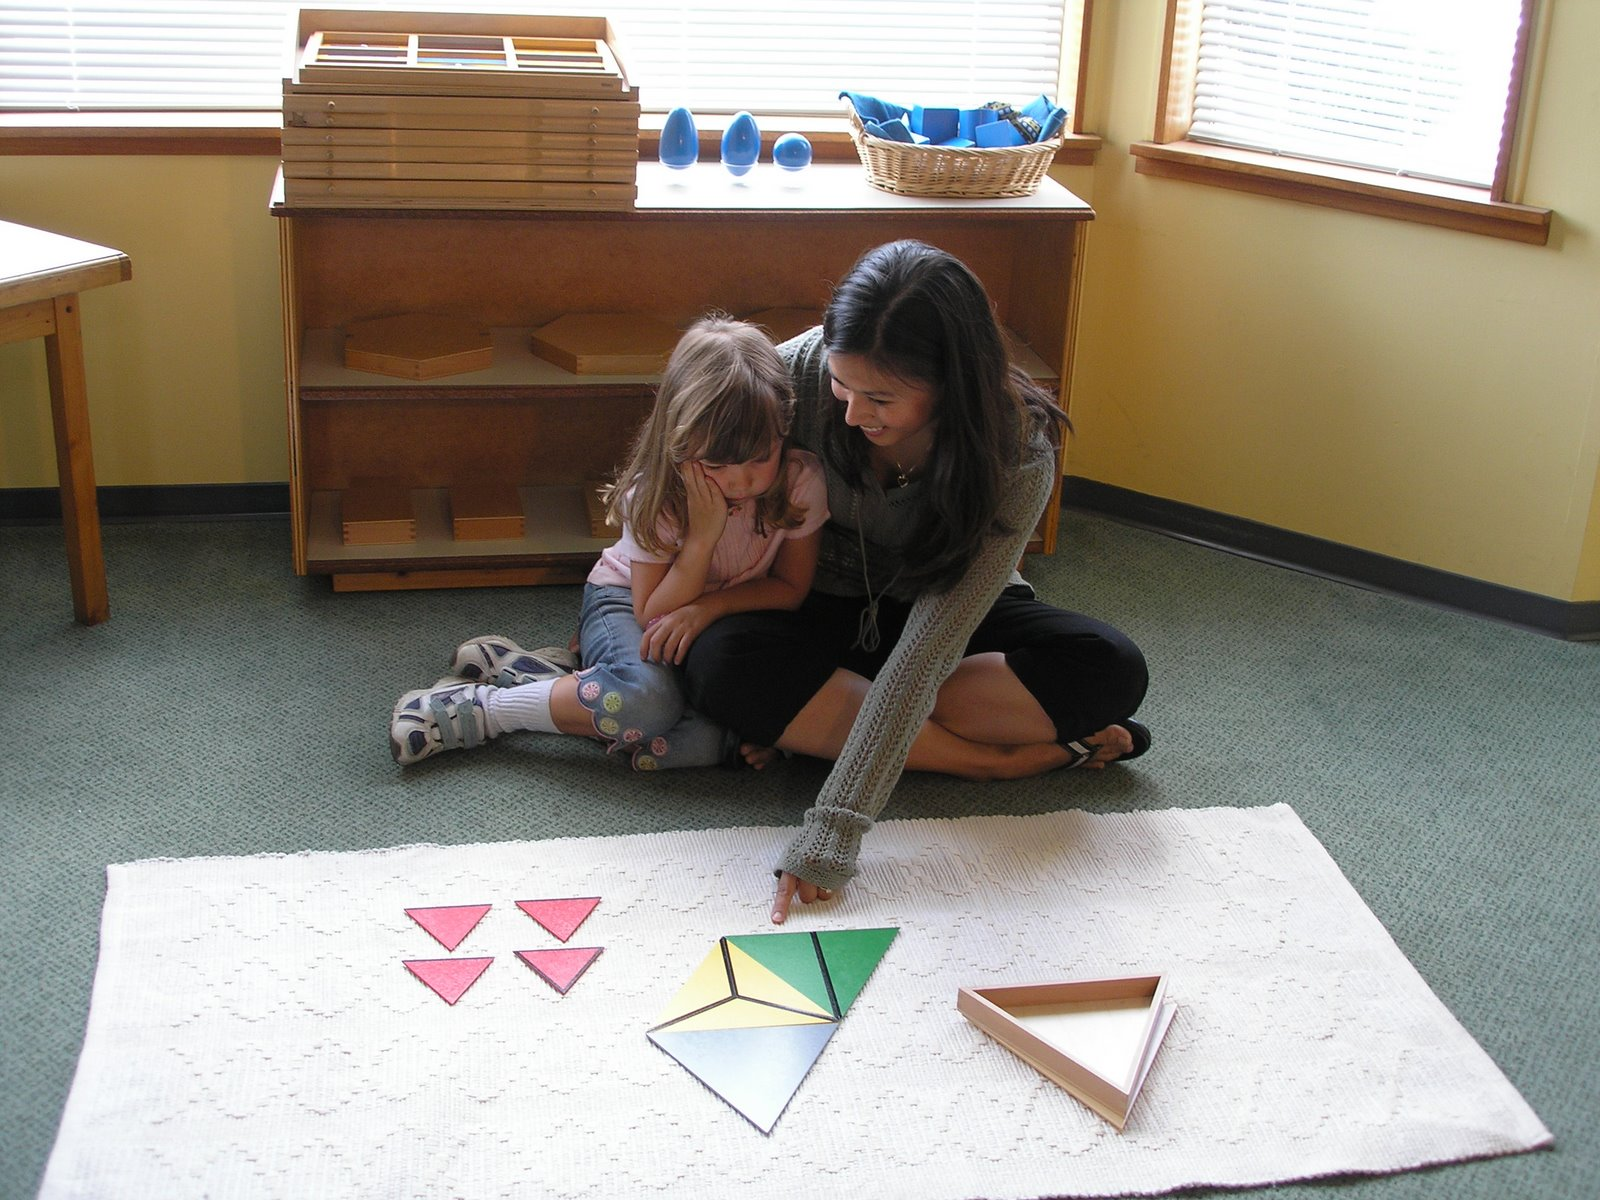 Gluing Redirecting Behavior NAMC Montessori Classroom Working Towards Normalization teacher and girl